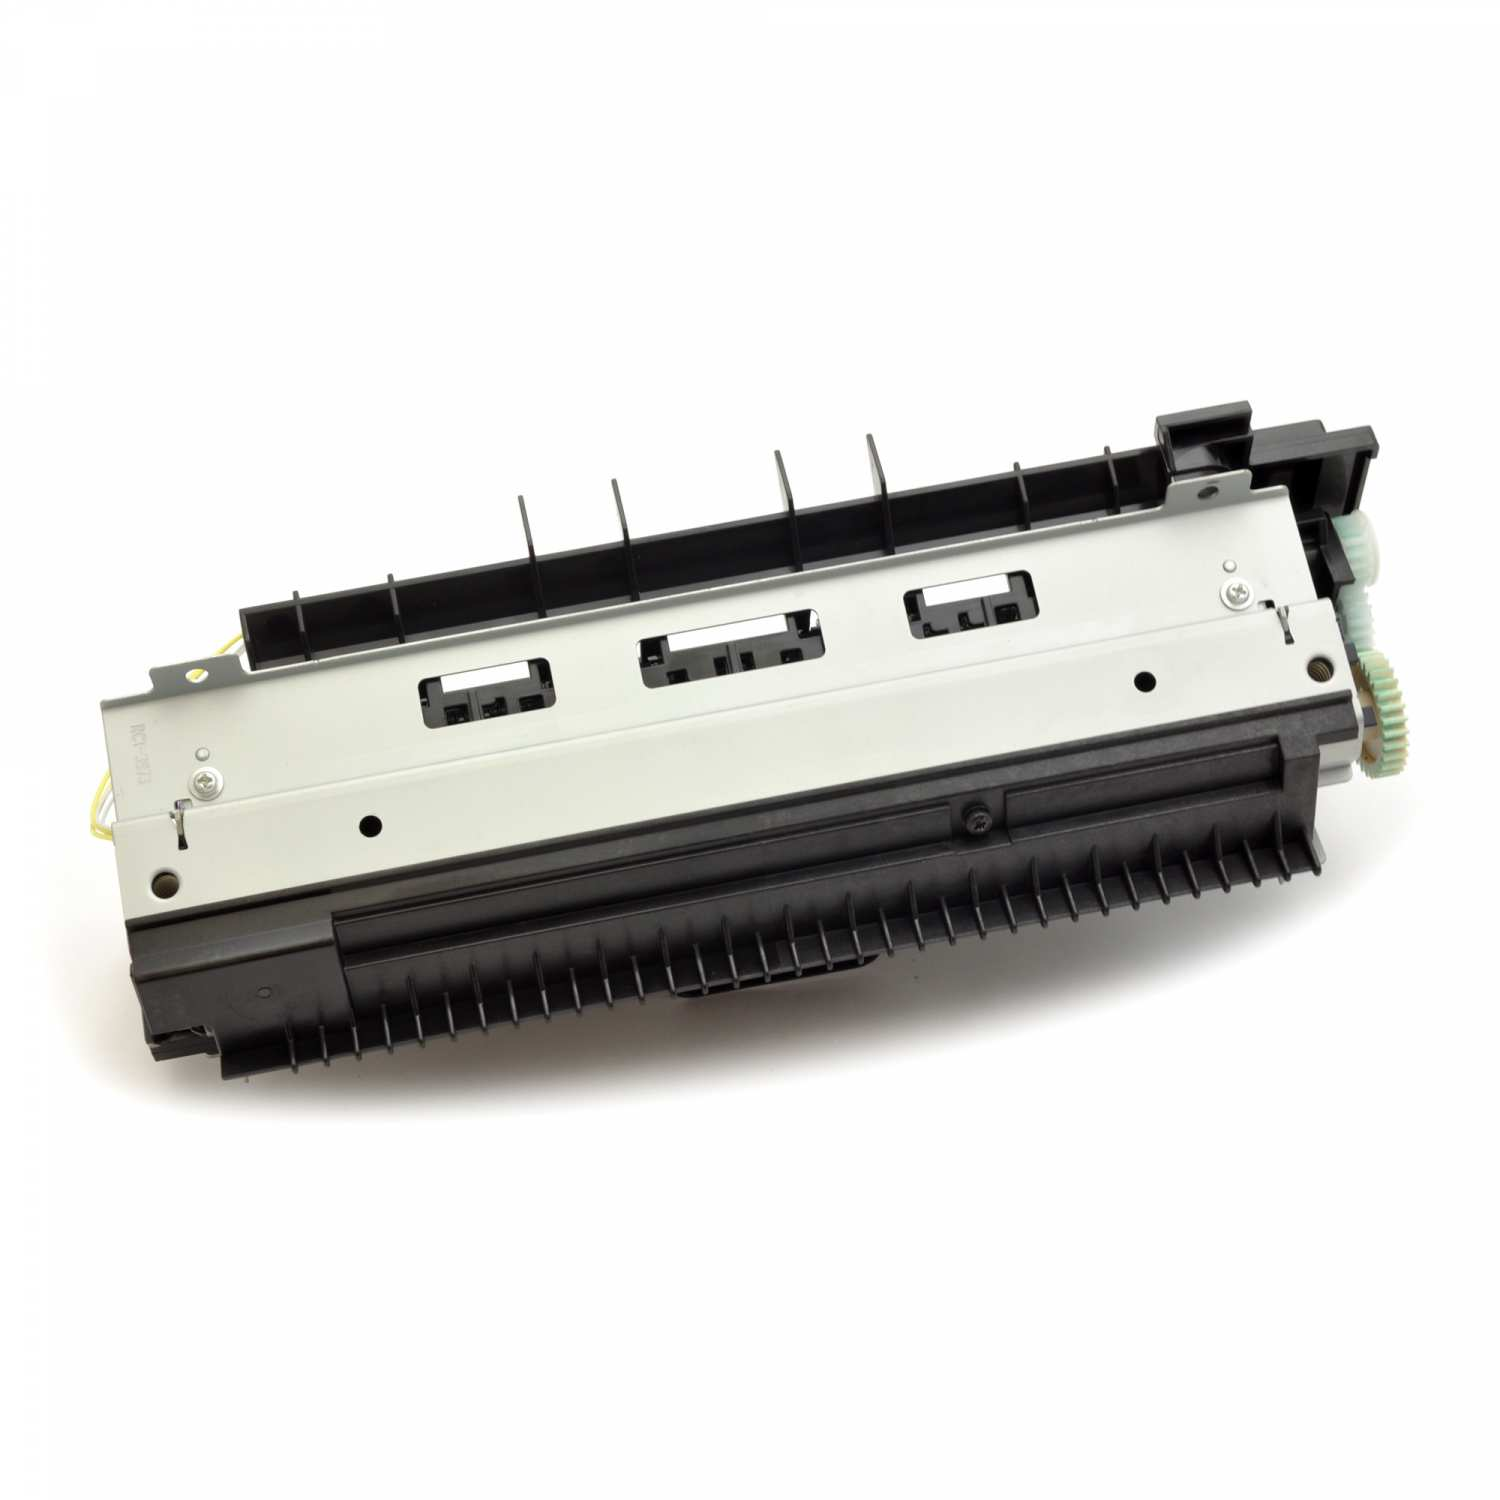 RM1-1491-000 RM1-1535-000 Fuser Assembly (110V) Purchase for HP LaserJet 2400